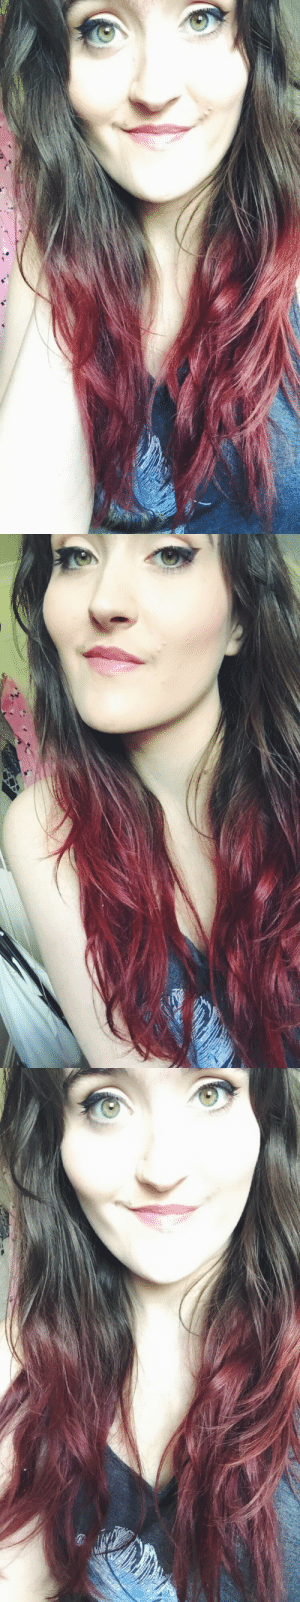 imeanrandomness:  phangirlingforphan:  You know when it's an all round good lighting/hair/makeup day and you just sort of selfie everywhere? Yeah that's today. Such a beautiful day I'm in a lovely mood :-) life ain't bad guys!  YOU LOOK GORGEOUS!! AND OMG YOUR HAIR IS BEAUTIFUL! Did you have to bleach it first or something? Oh my god, you look amazing! Like seriously! Goddamn those cheekboness!!: imeanrandomness:  phangirlingforphan:  You know when it's an all round good lighting/hair/makeup day and you just sort of selfie everywhere? Yeah that's today. Such a beautiful day I'm in a lovely mood :-) life ain't bad guys!  YOU LOOK GORGEOUS!! AND OMG YOUR HAIR IS BEAUTIFUL! Did you have to bleach it first or something? Oh my god, you look amazing! Like seriously! Goddamn those cheekboness!!